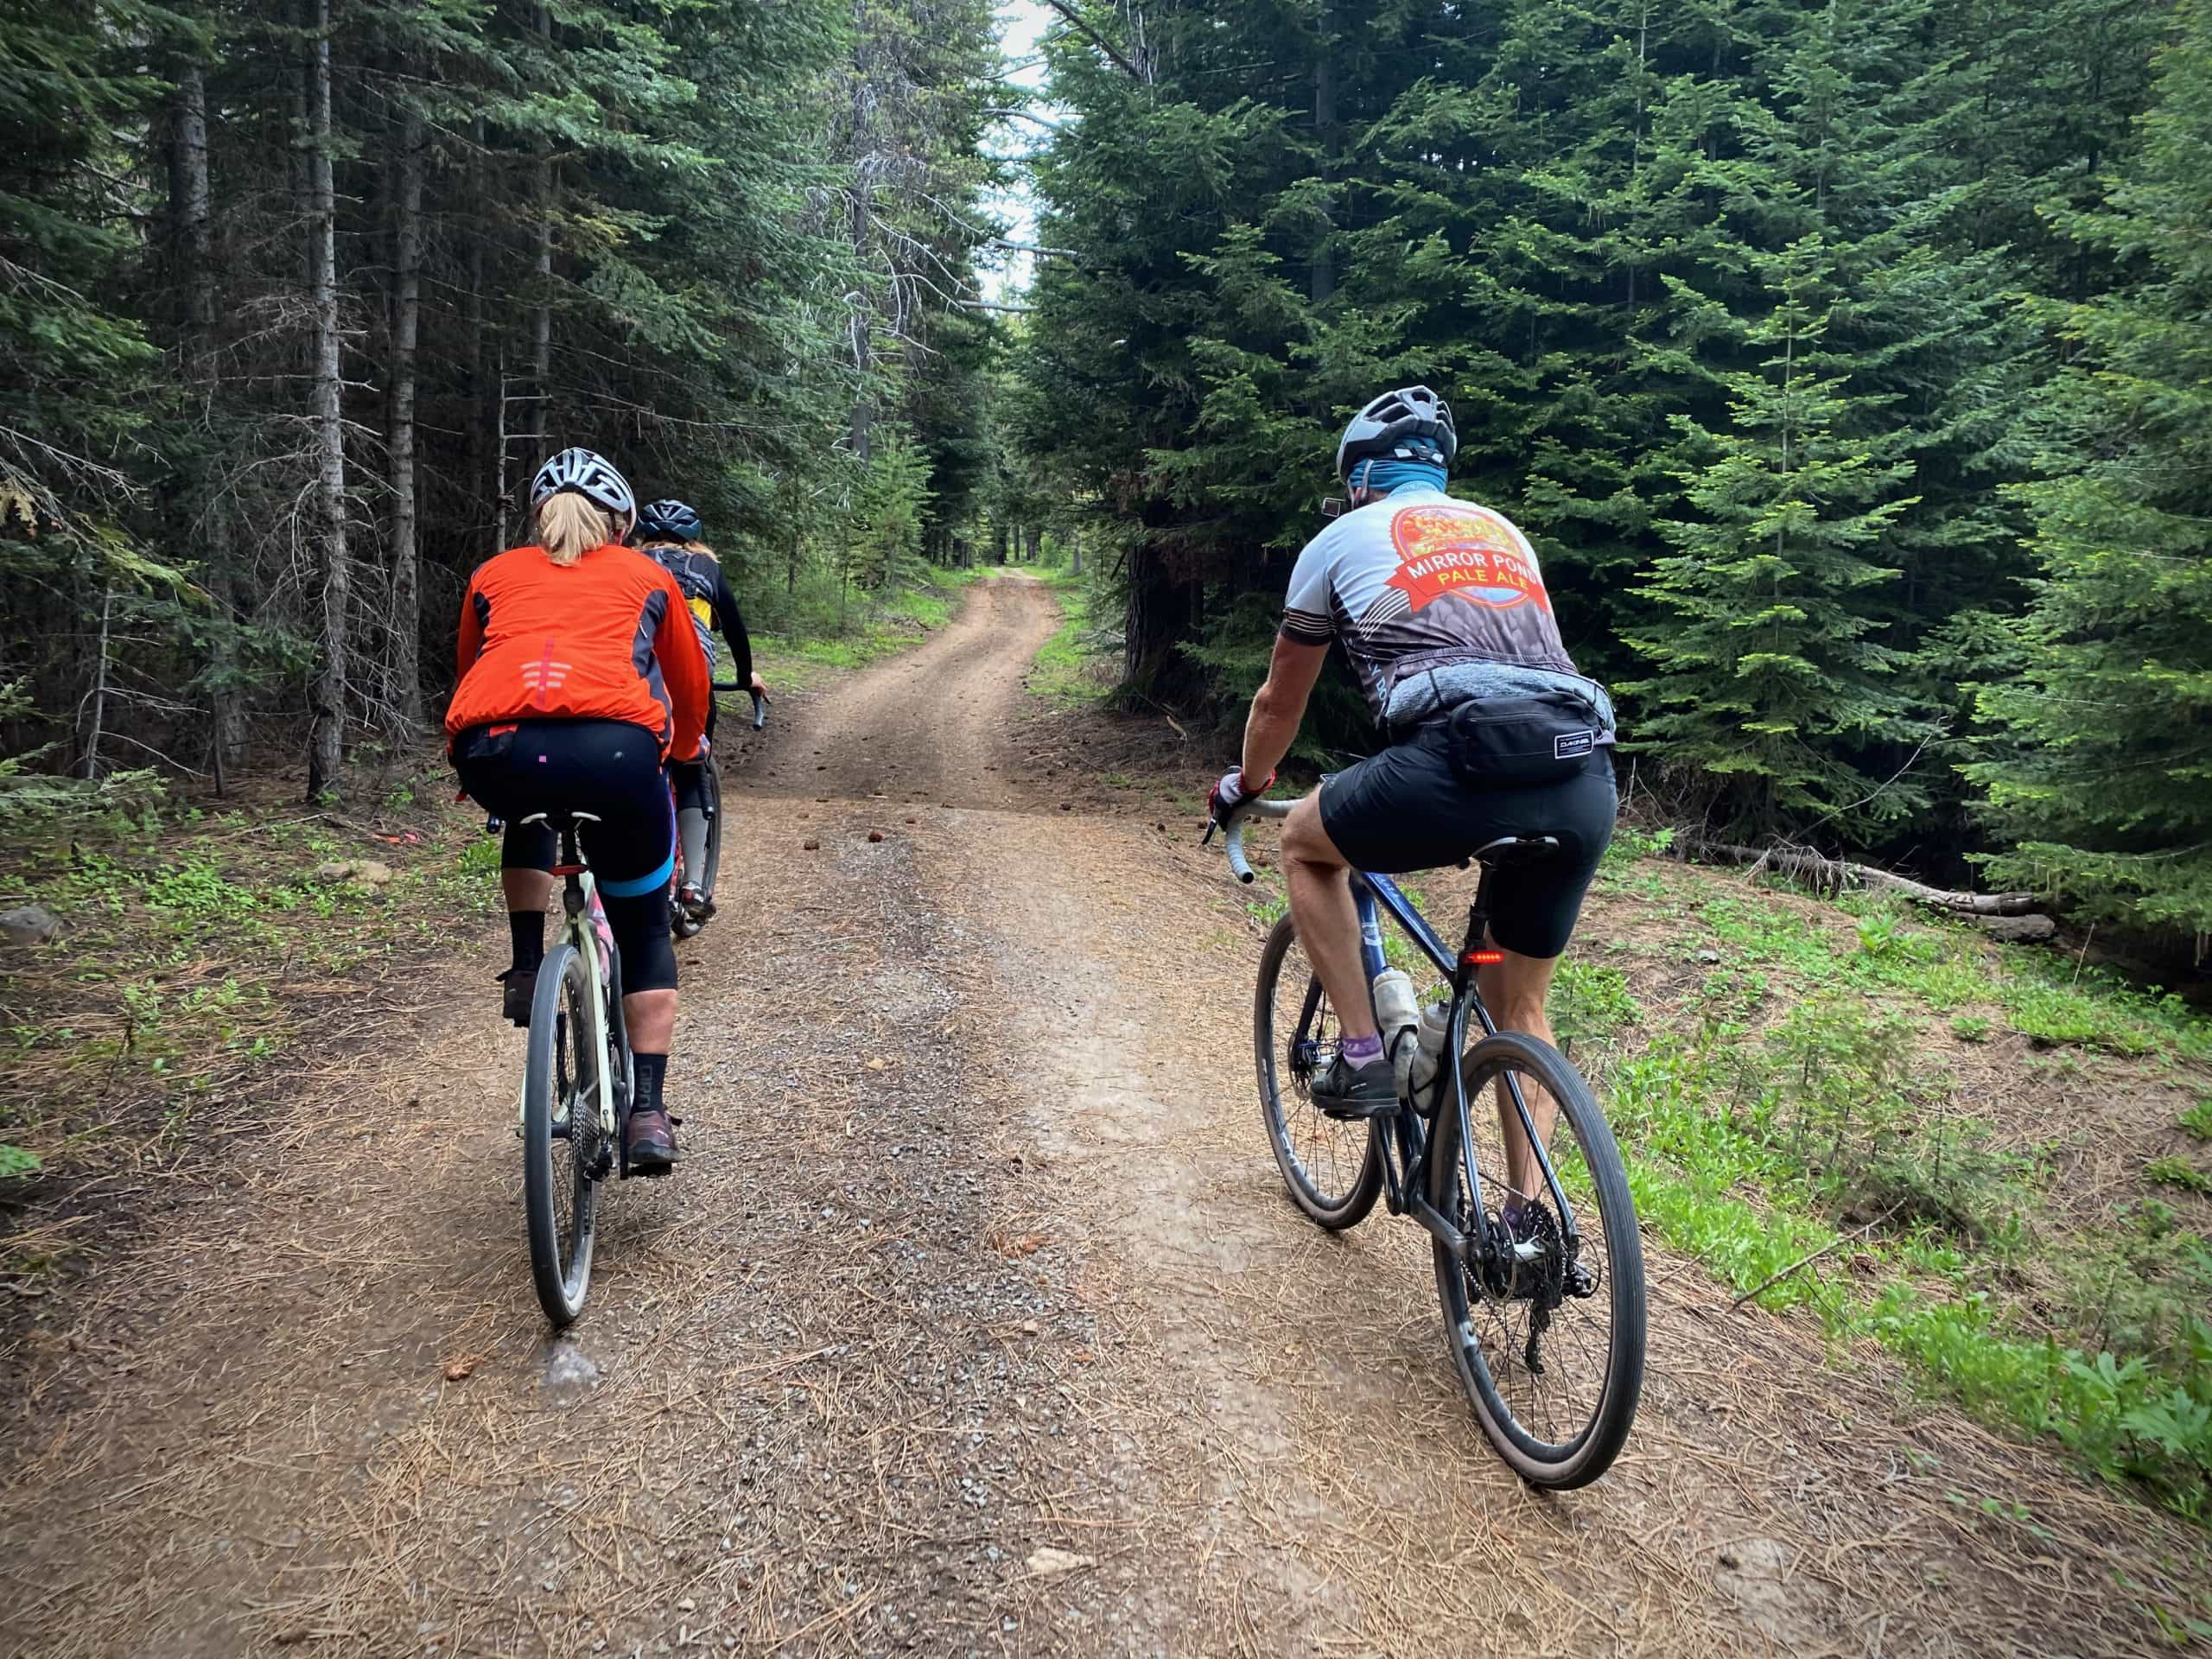 Two cyclists on loamy forest service roads near Dufur, Oregon.